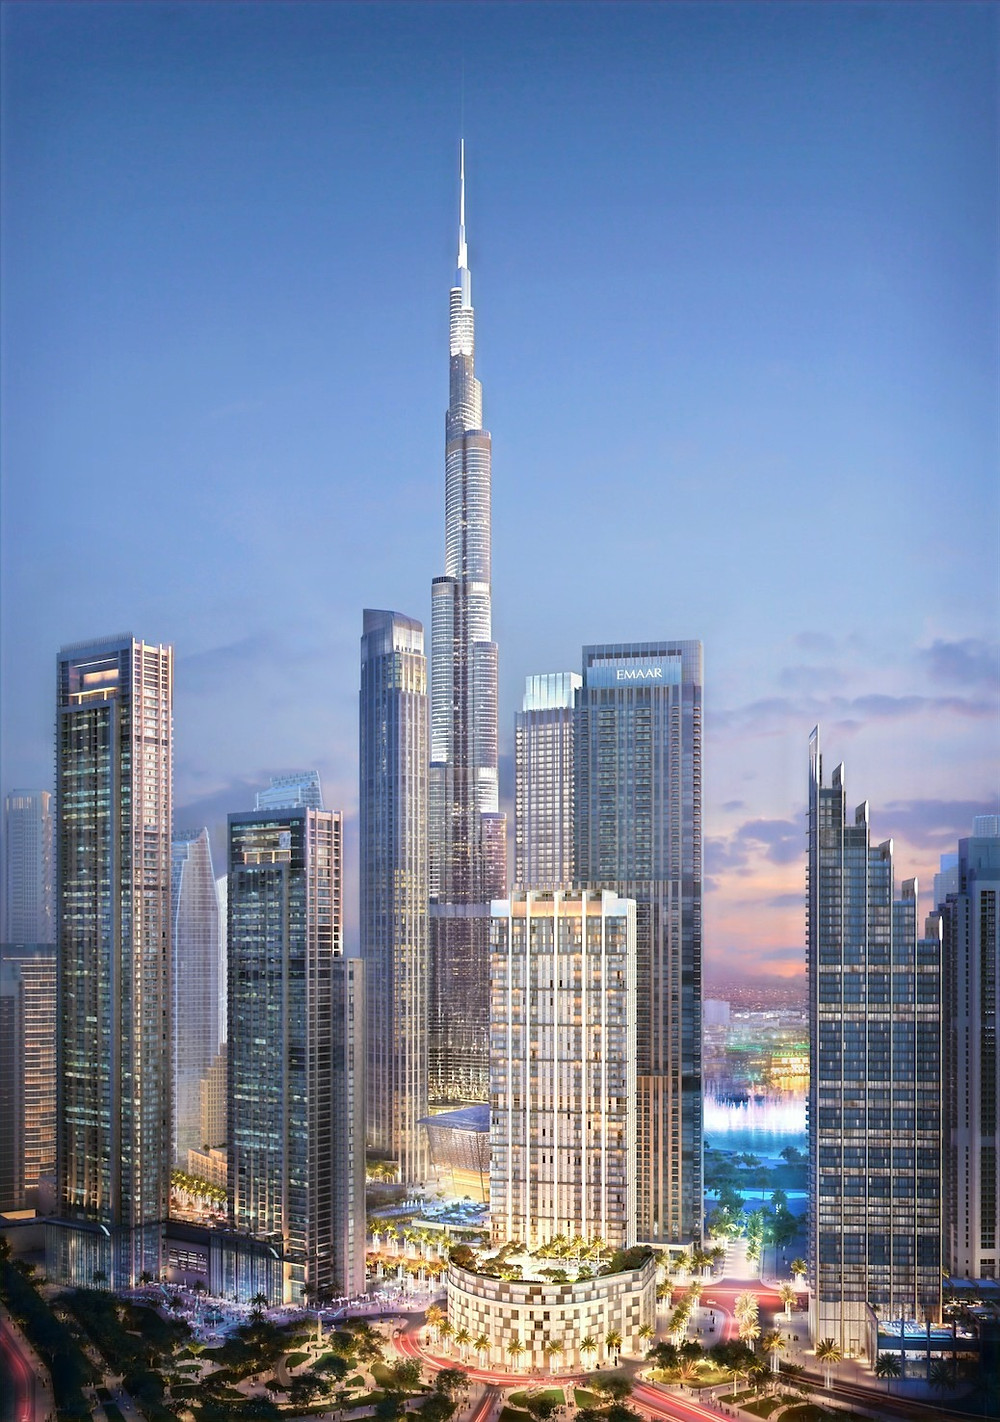 Emaar Properties launched Burj Crown, a new, 44-storey luxury residential tower